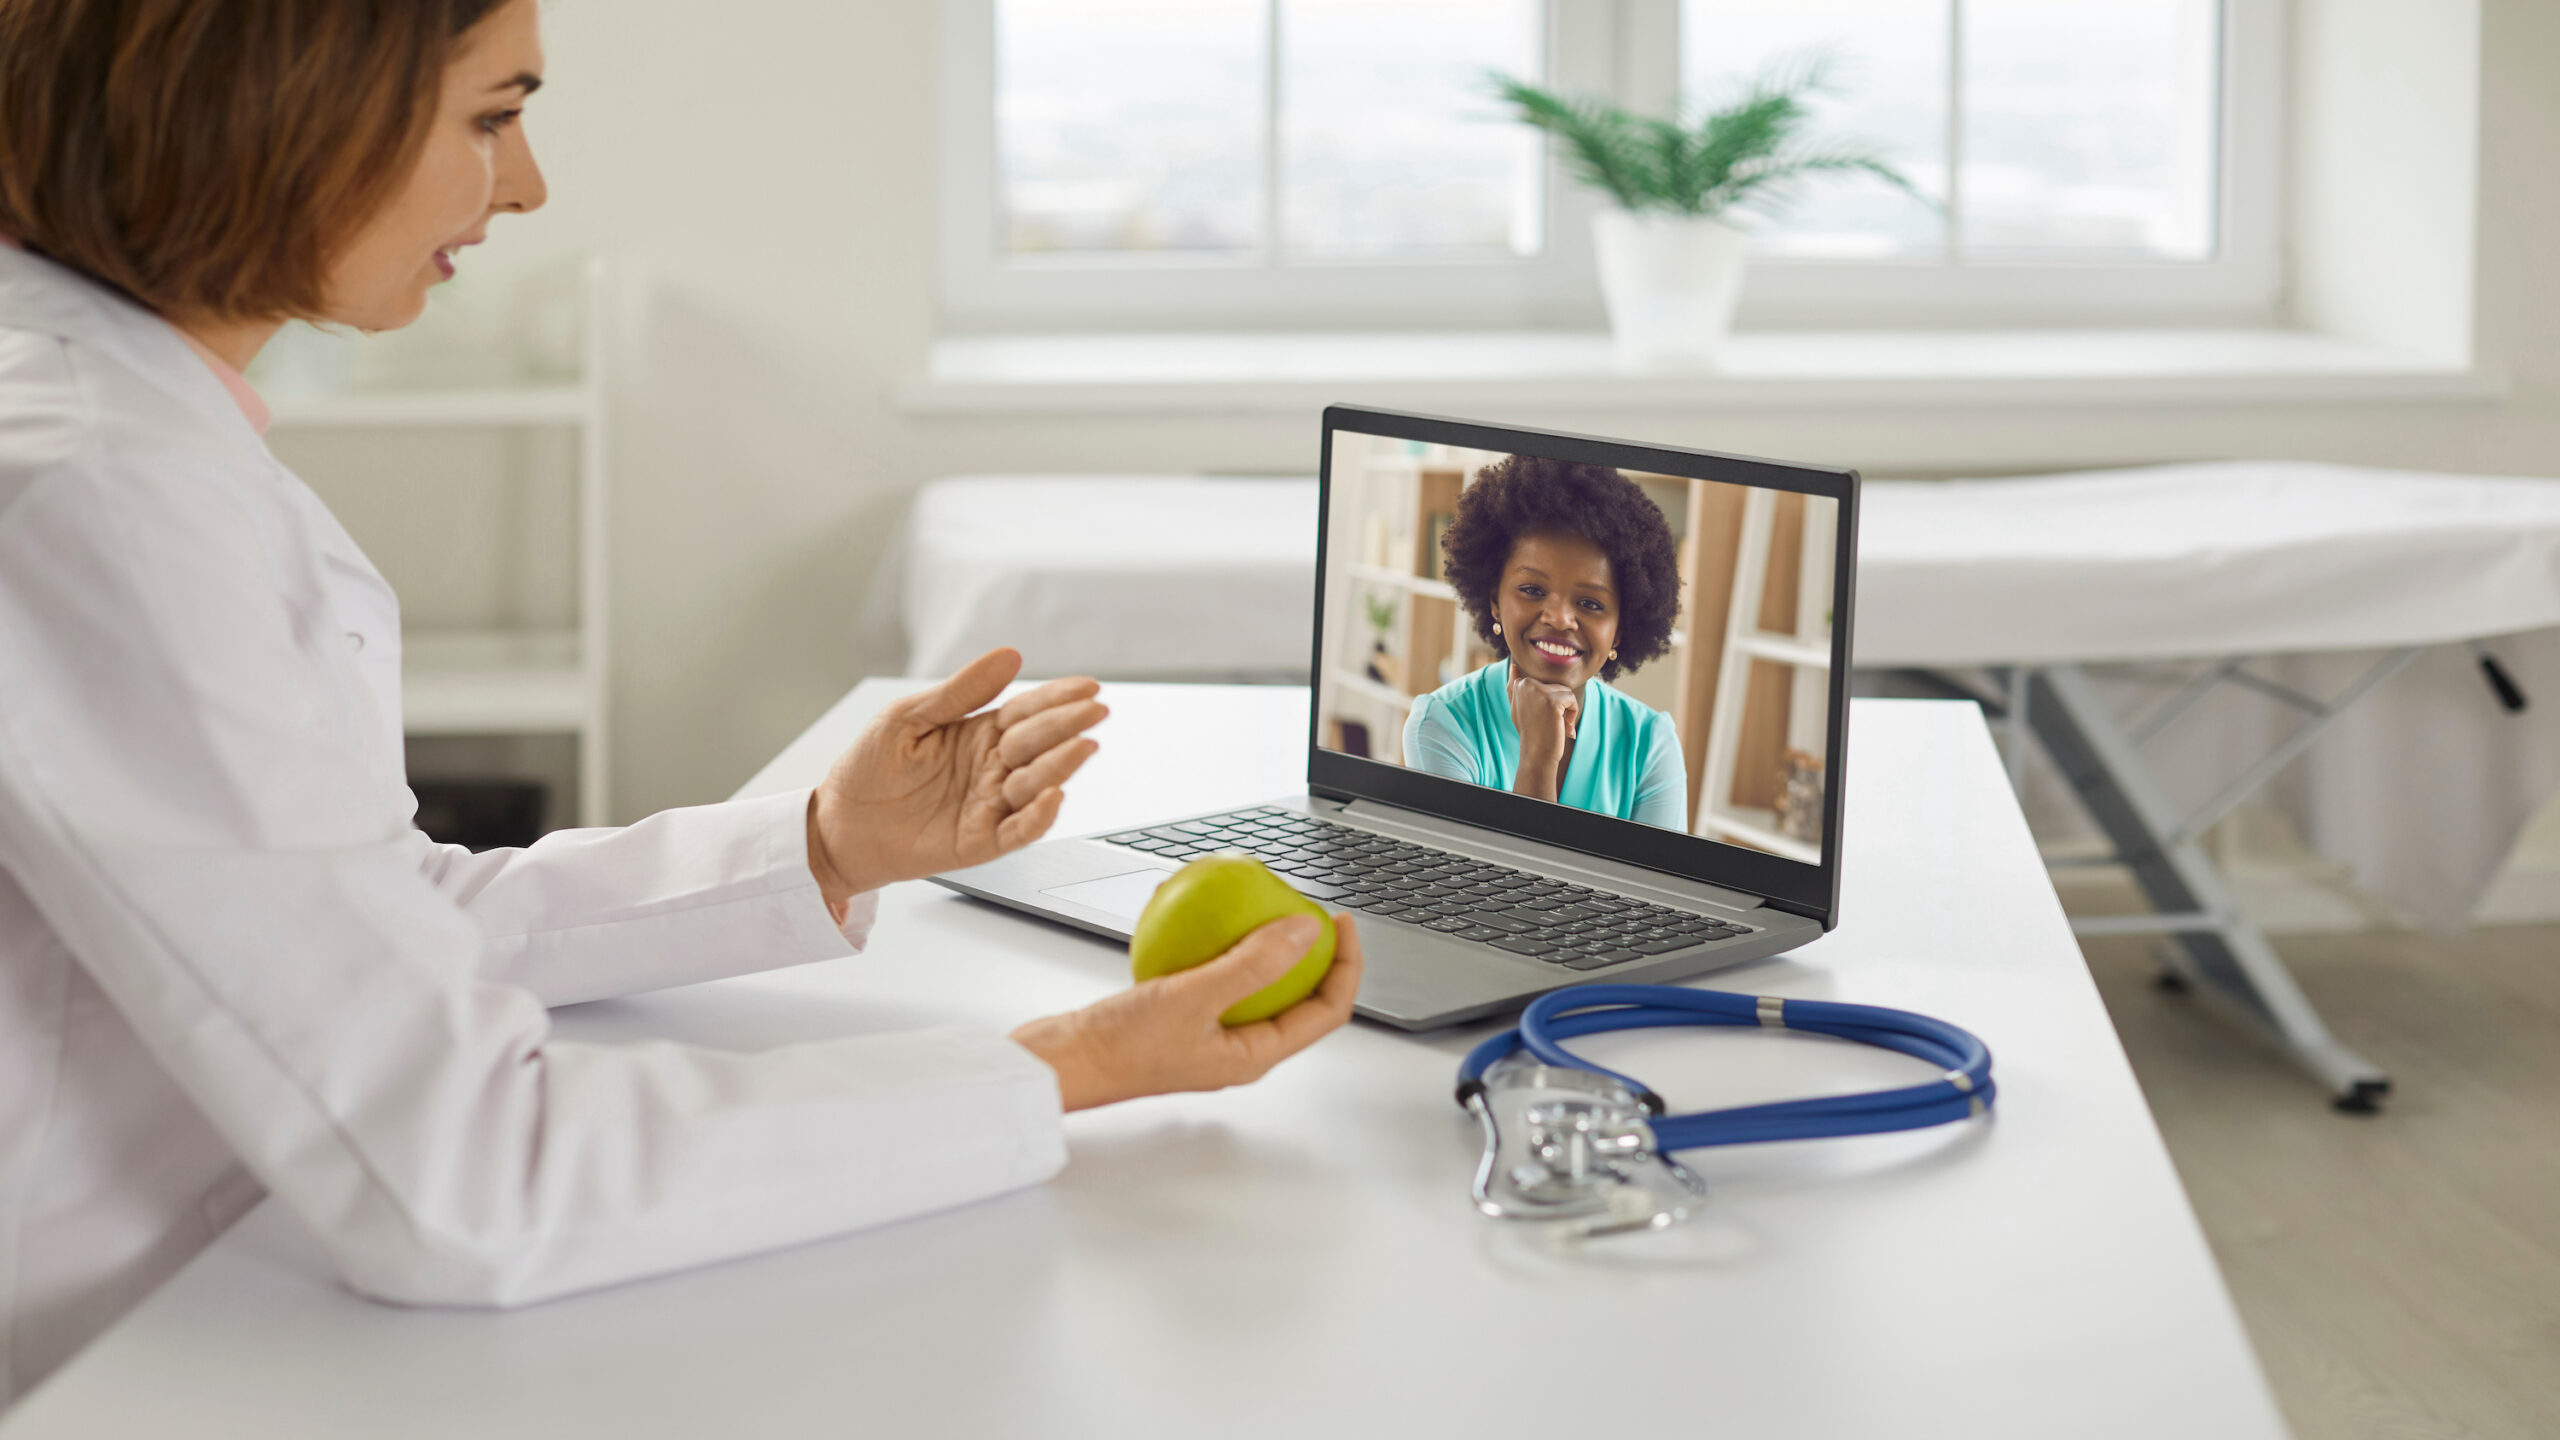 Women working with dietitian over laptop